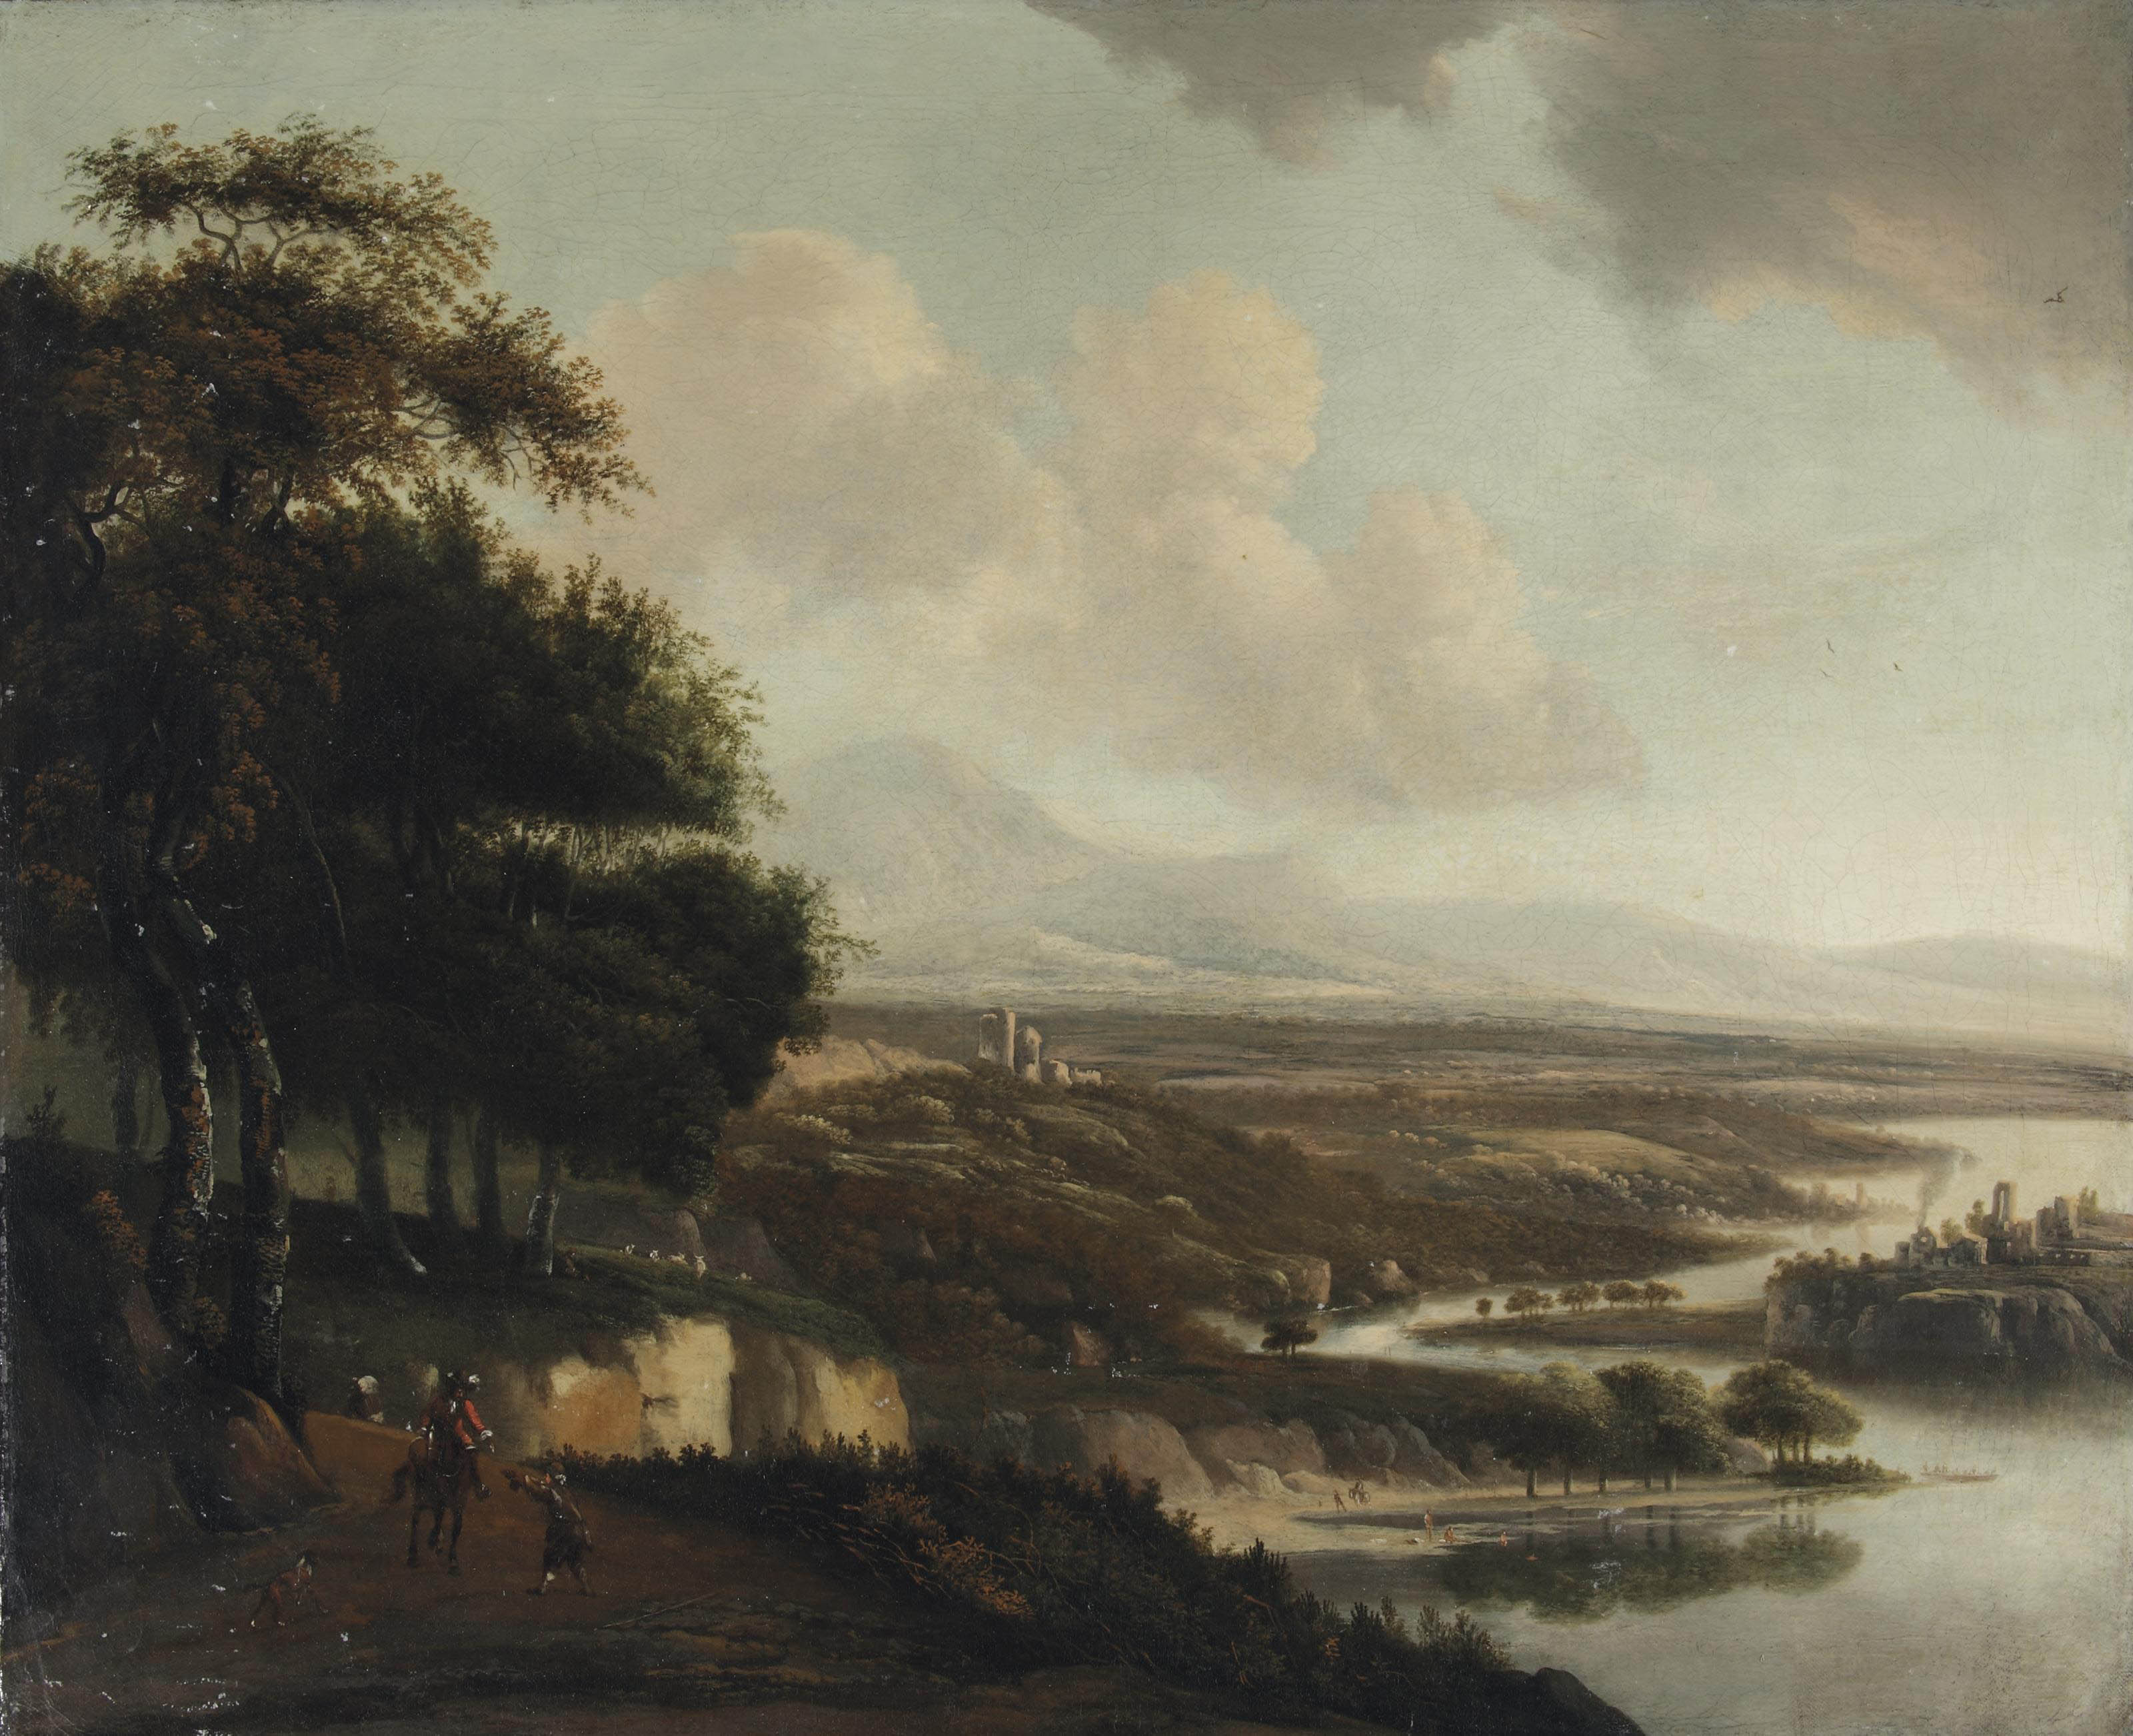 An extensive Italianate river landscape with horsemen on a path